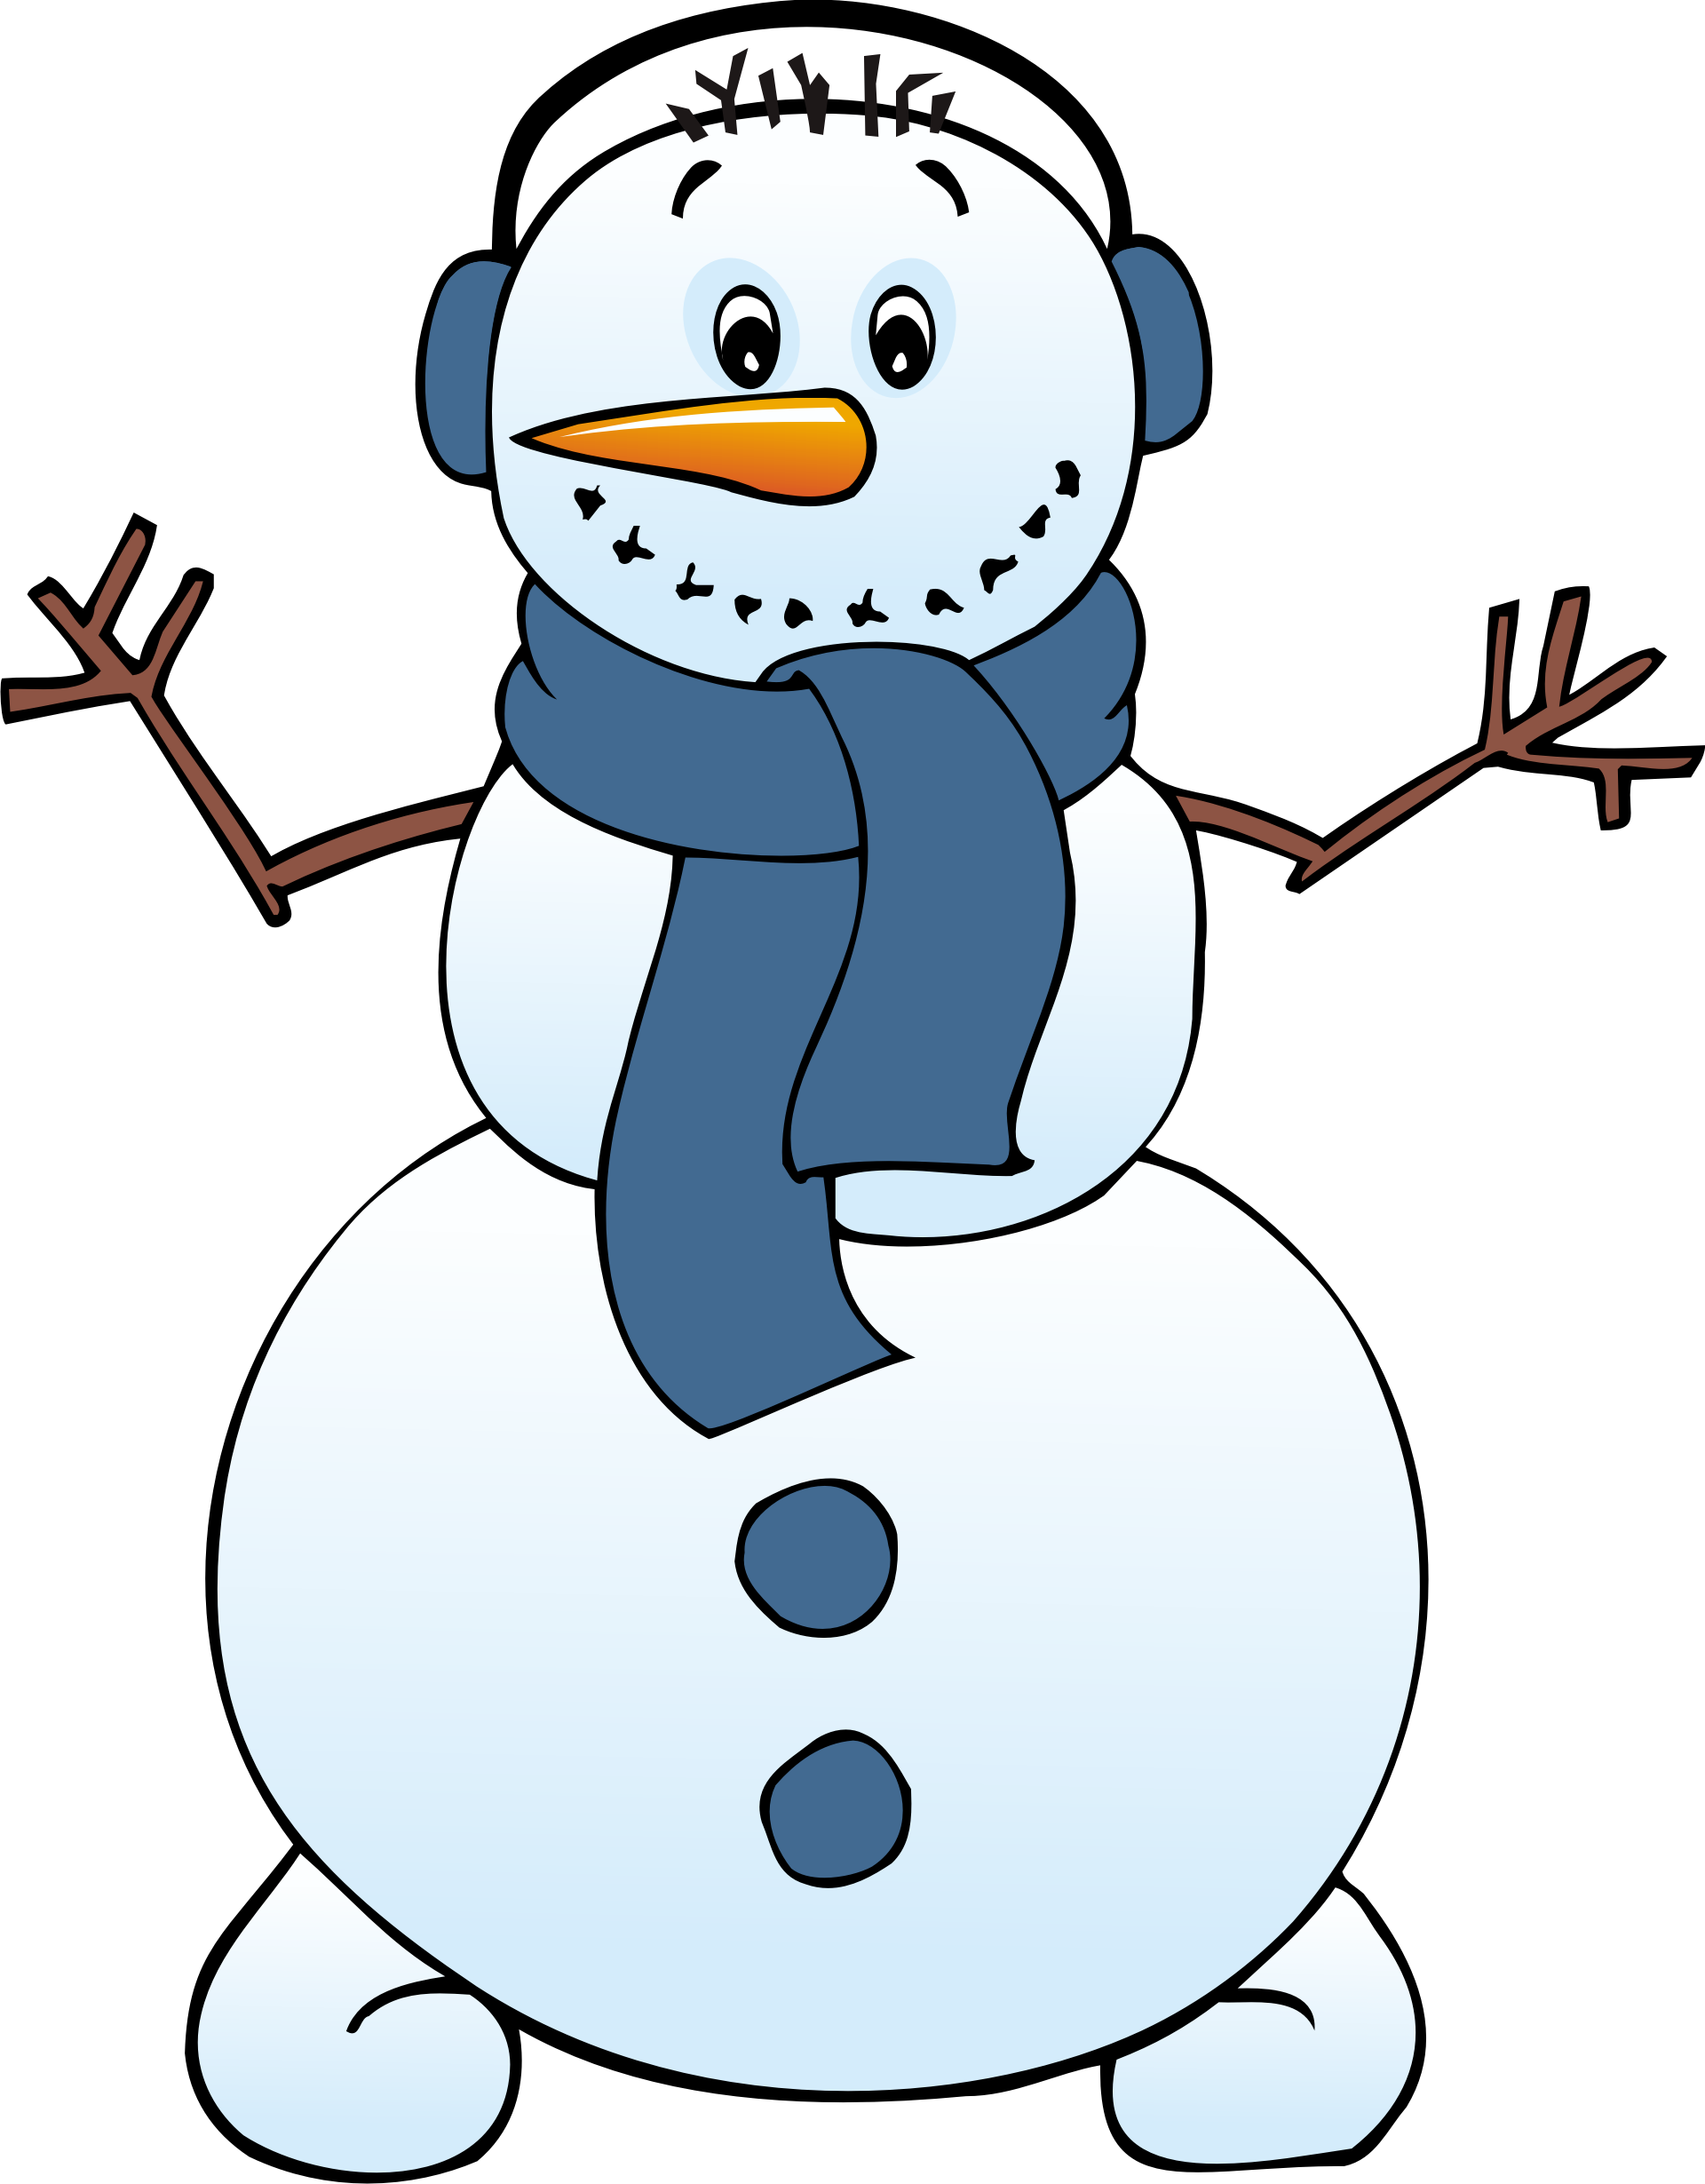 Snowflake with face clipart image freeuse library Free Pictures Of Snow Men, Download Free Clip Art, Free Clip Art on ... image freeuse library